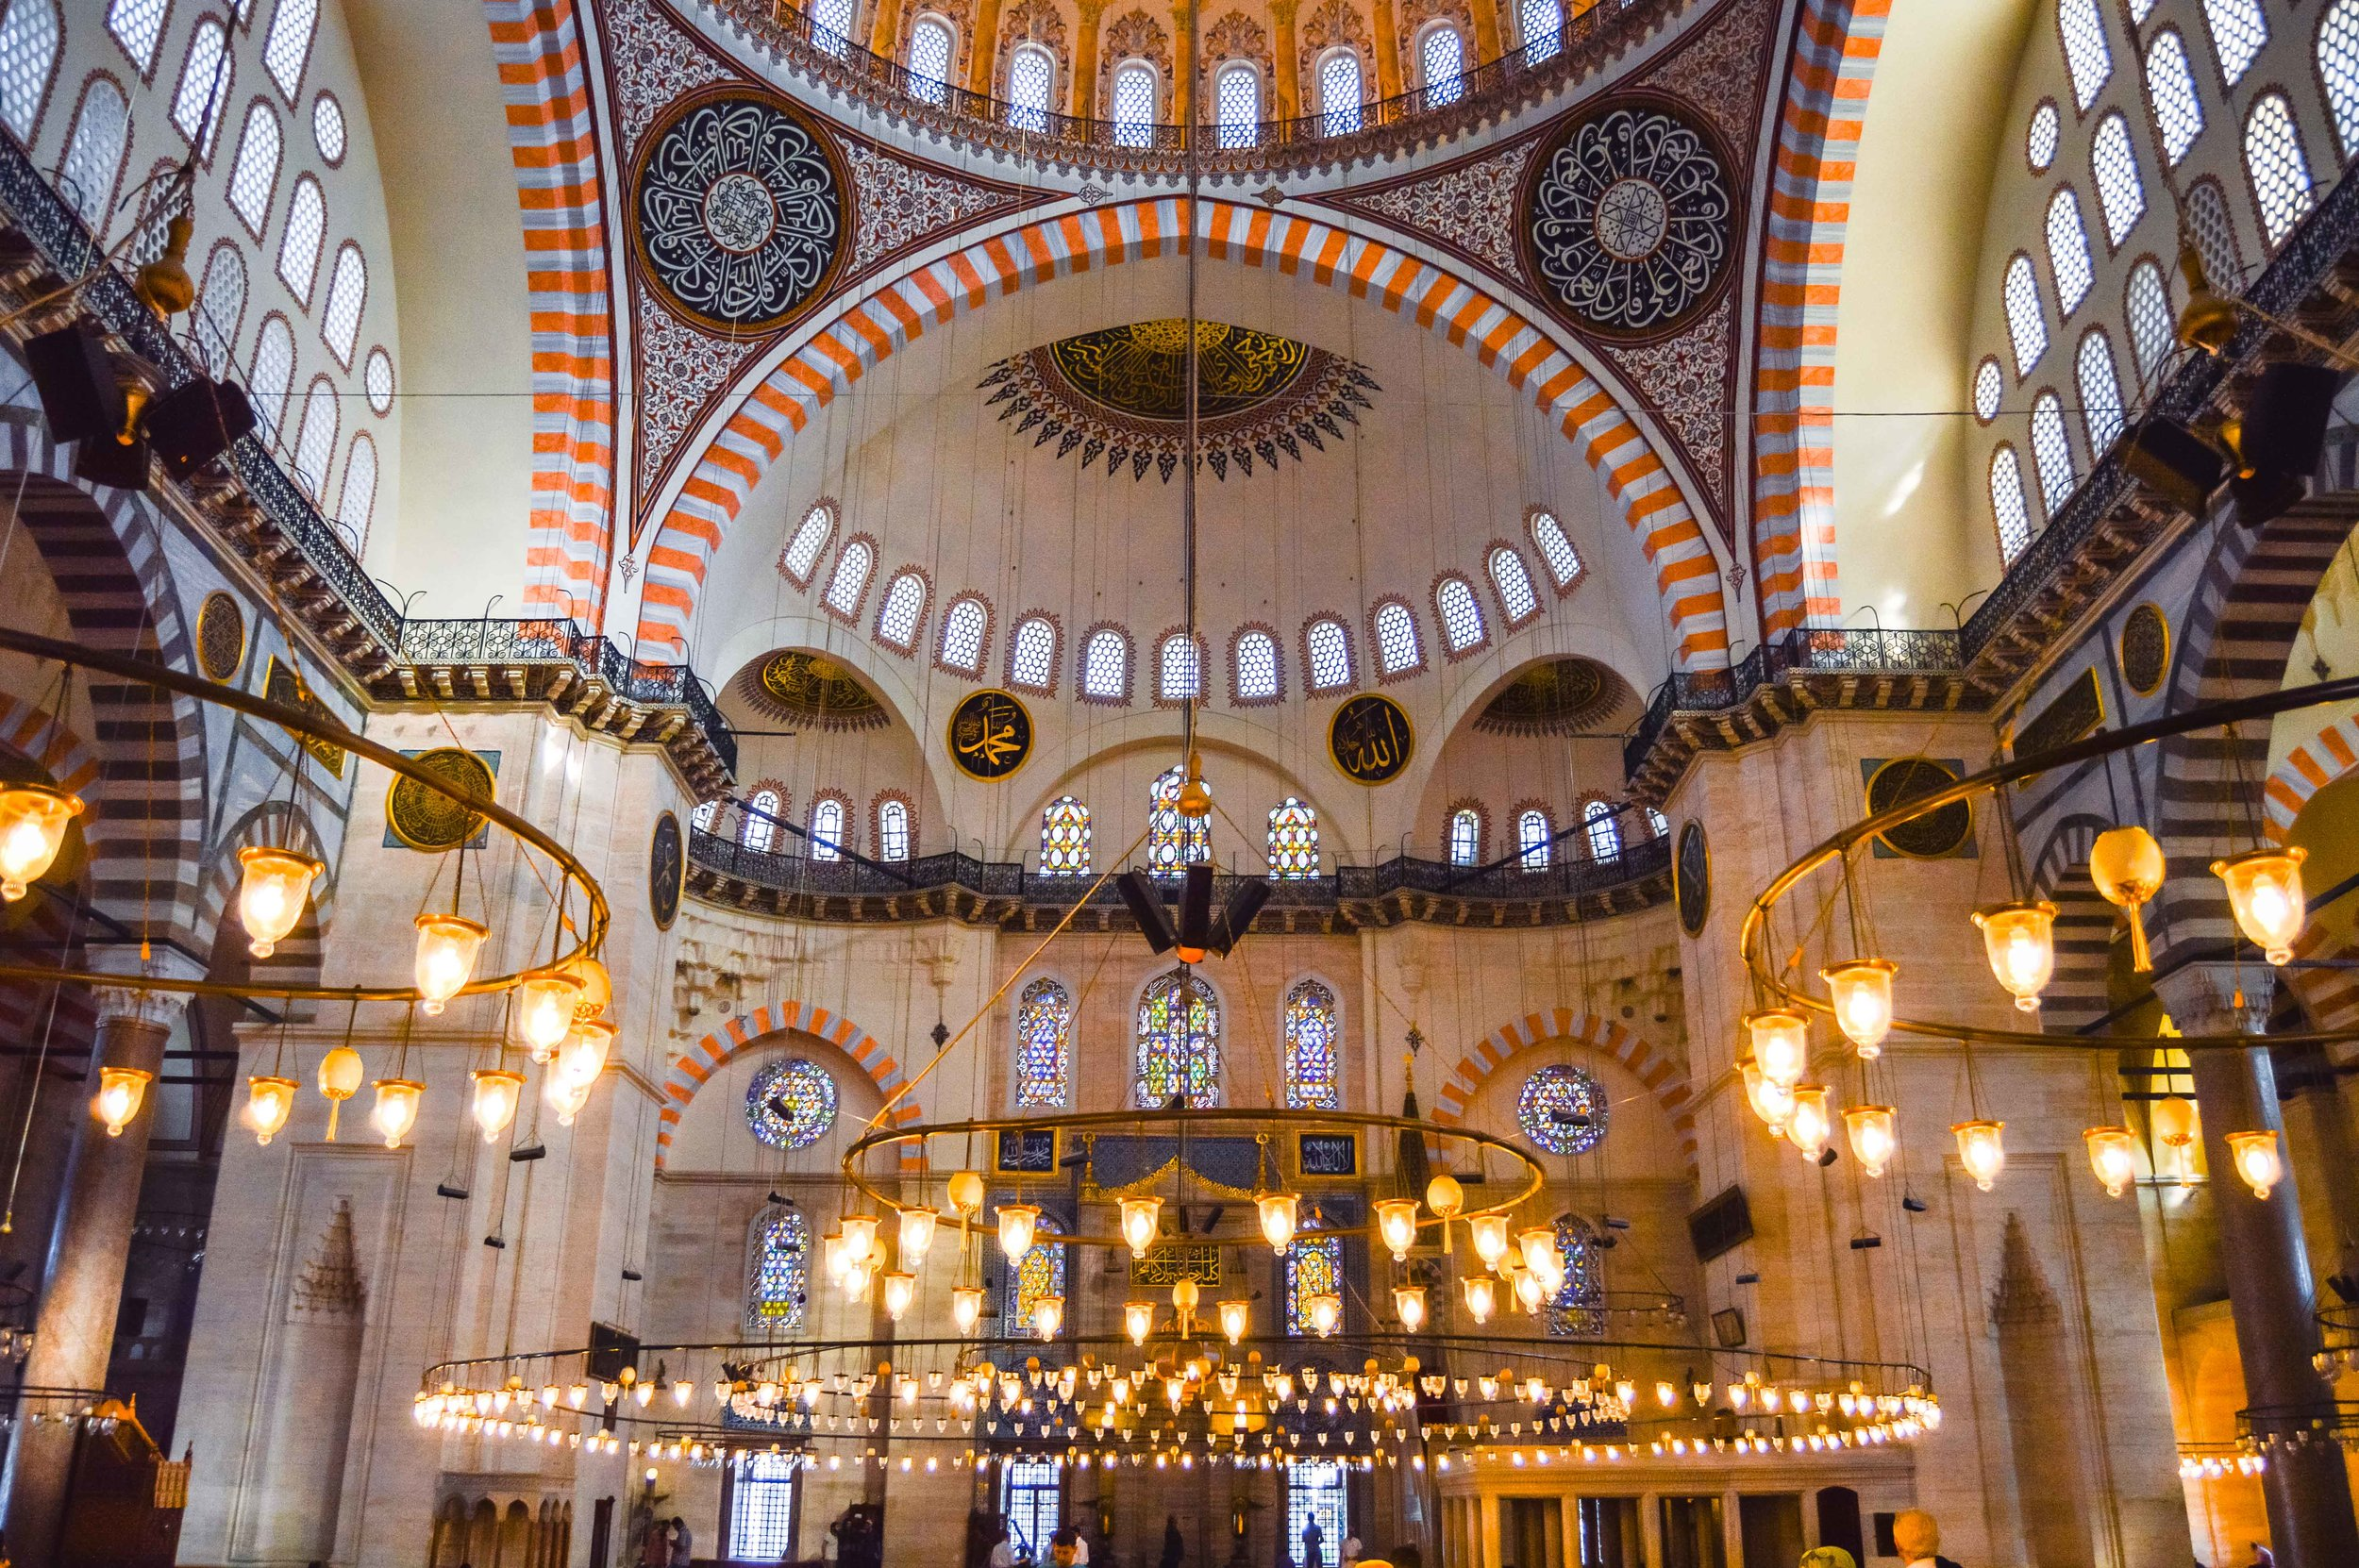 Süleymaniye Mosque Muslim Ottoman Mosaic Tile Persian Empire Constantinople Architecture Istanbul Turkey